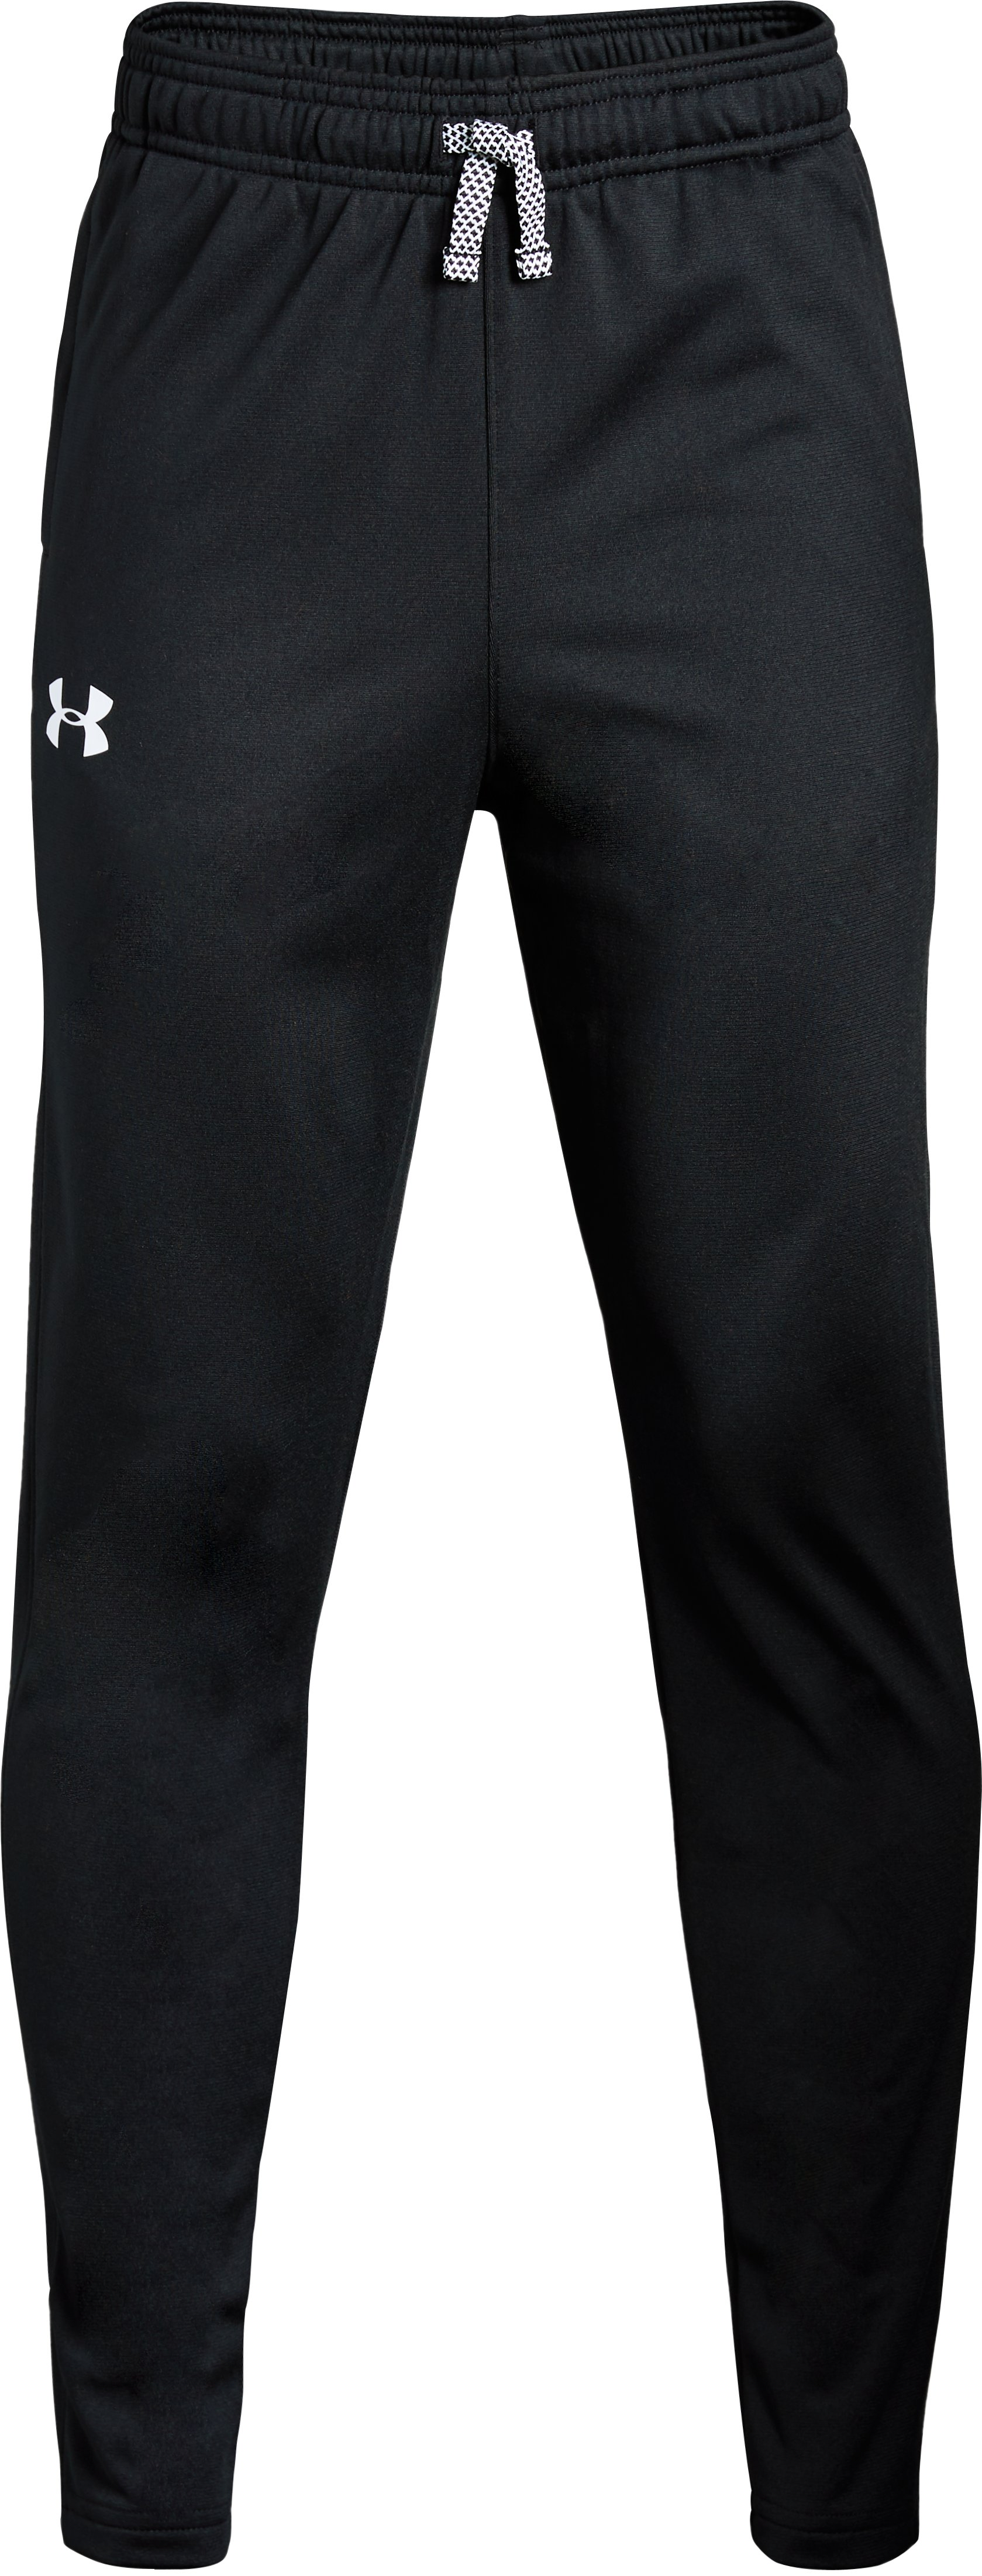 Boys' UA Brawler Tapered Pants, Black